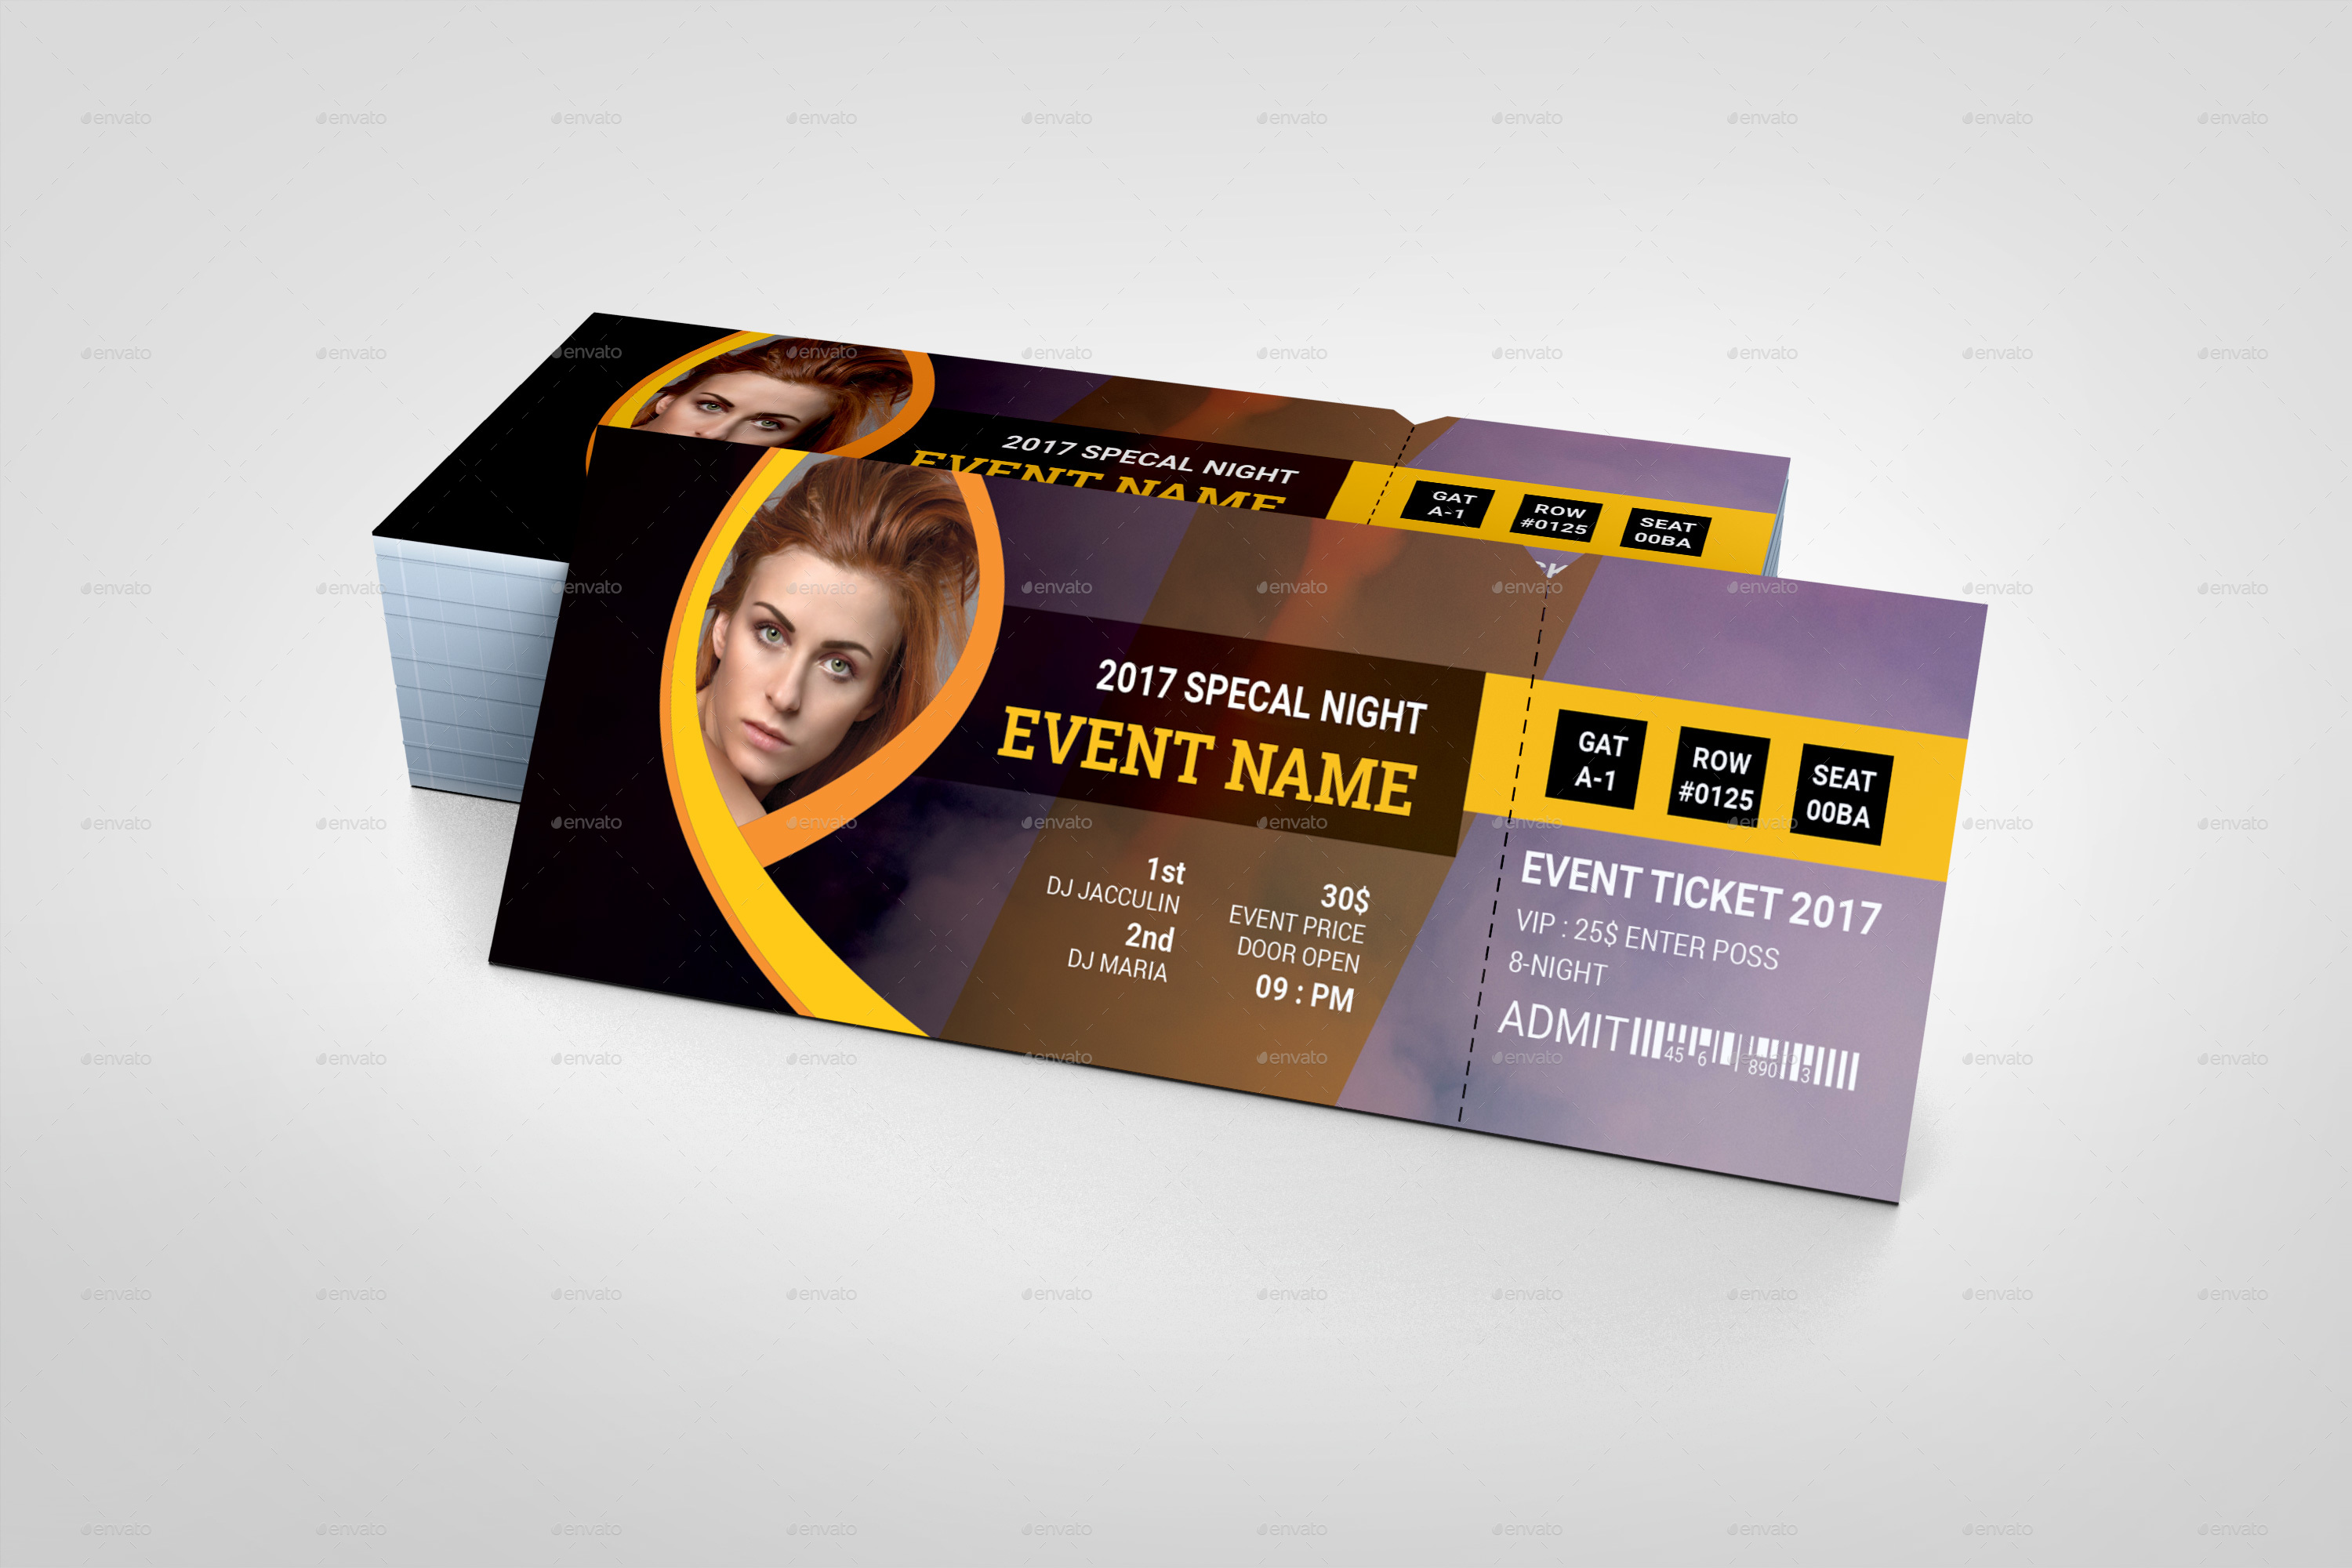 9 event ticket designs examples psd ai vector eps